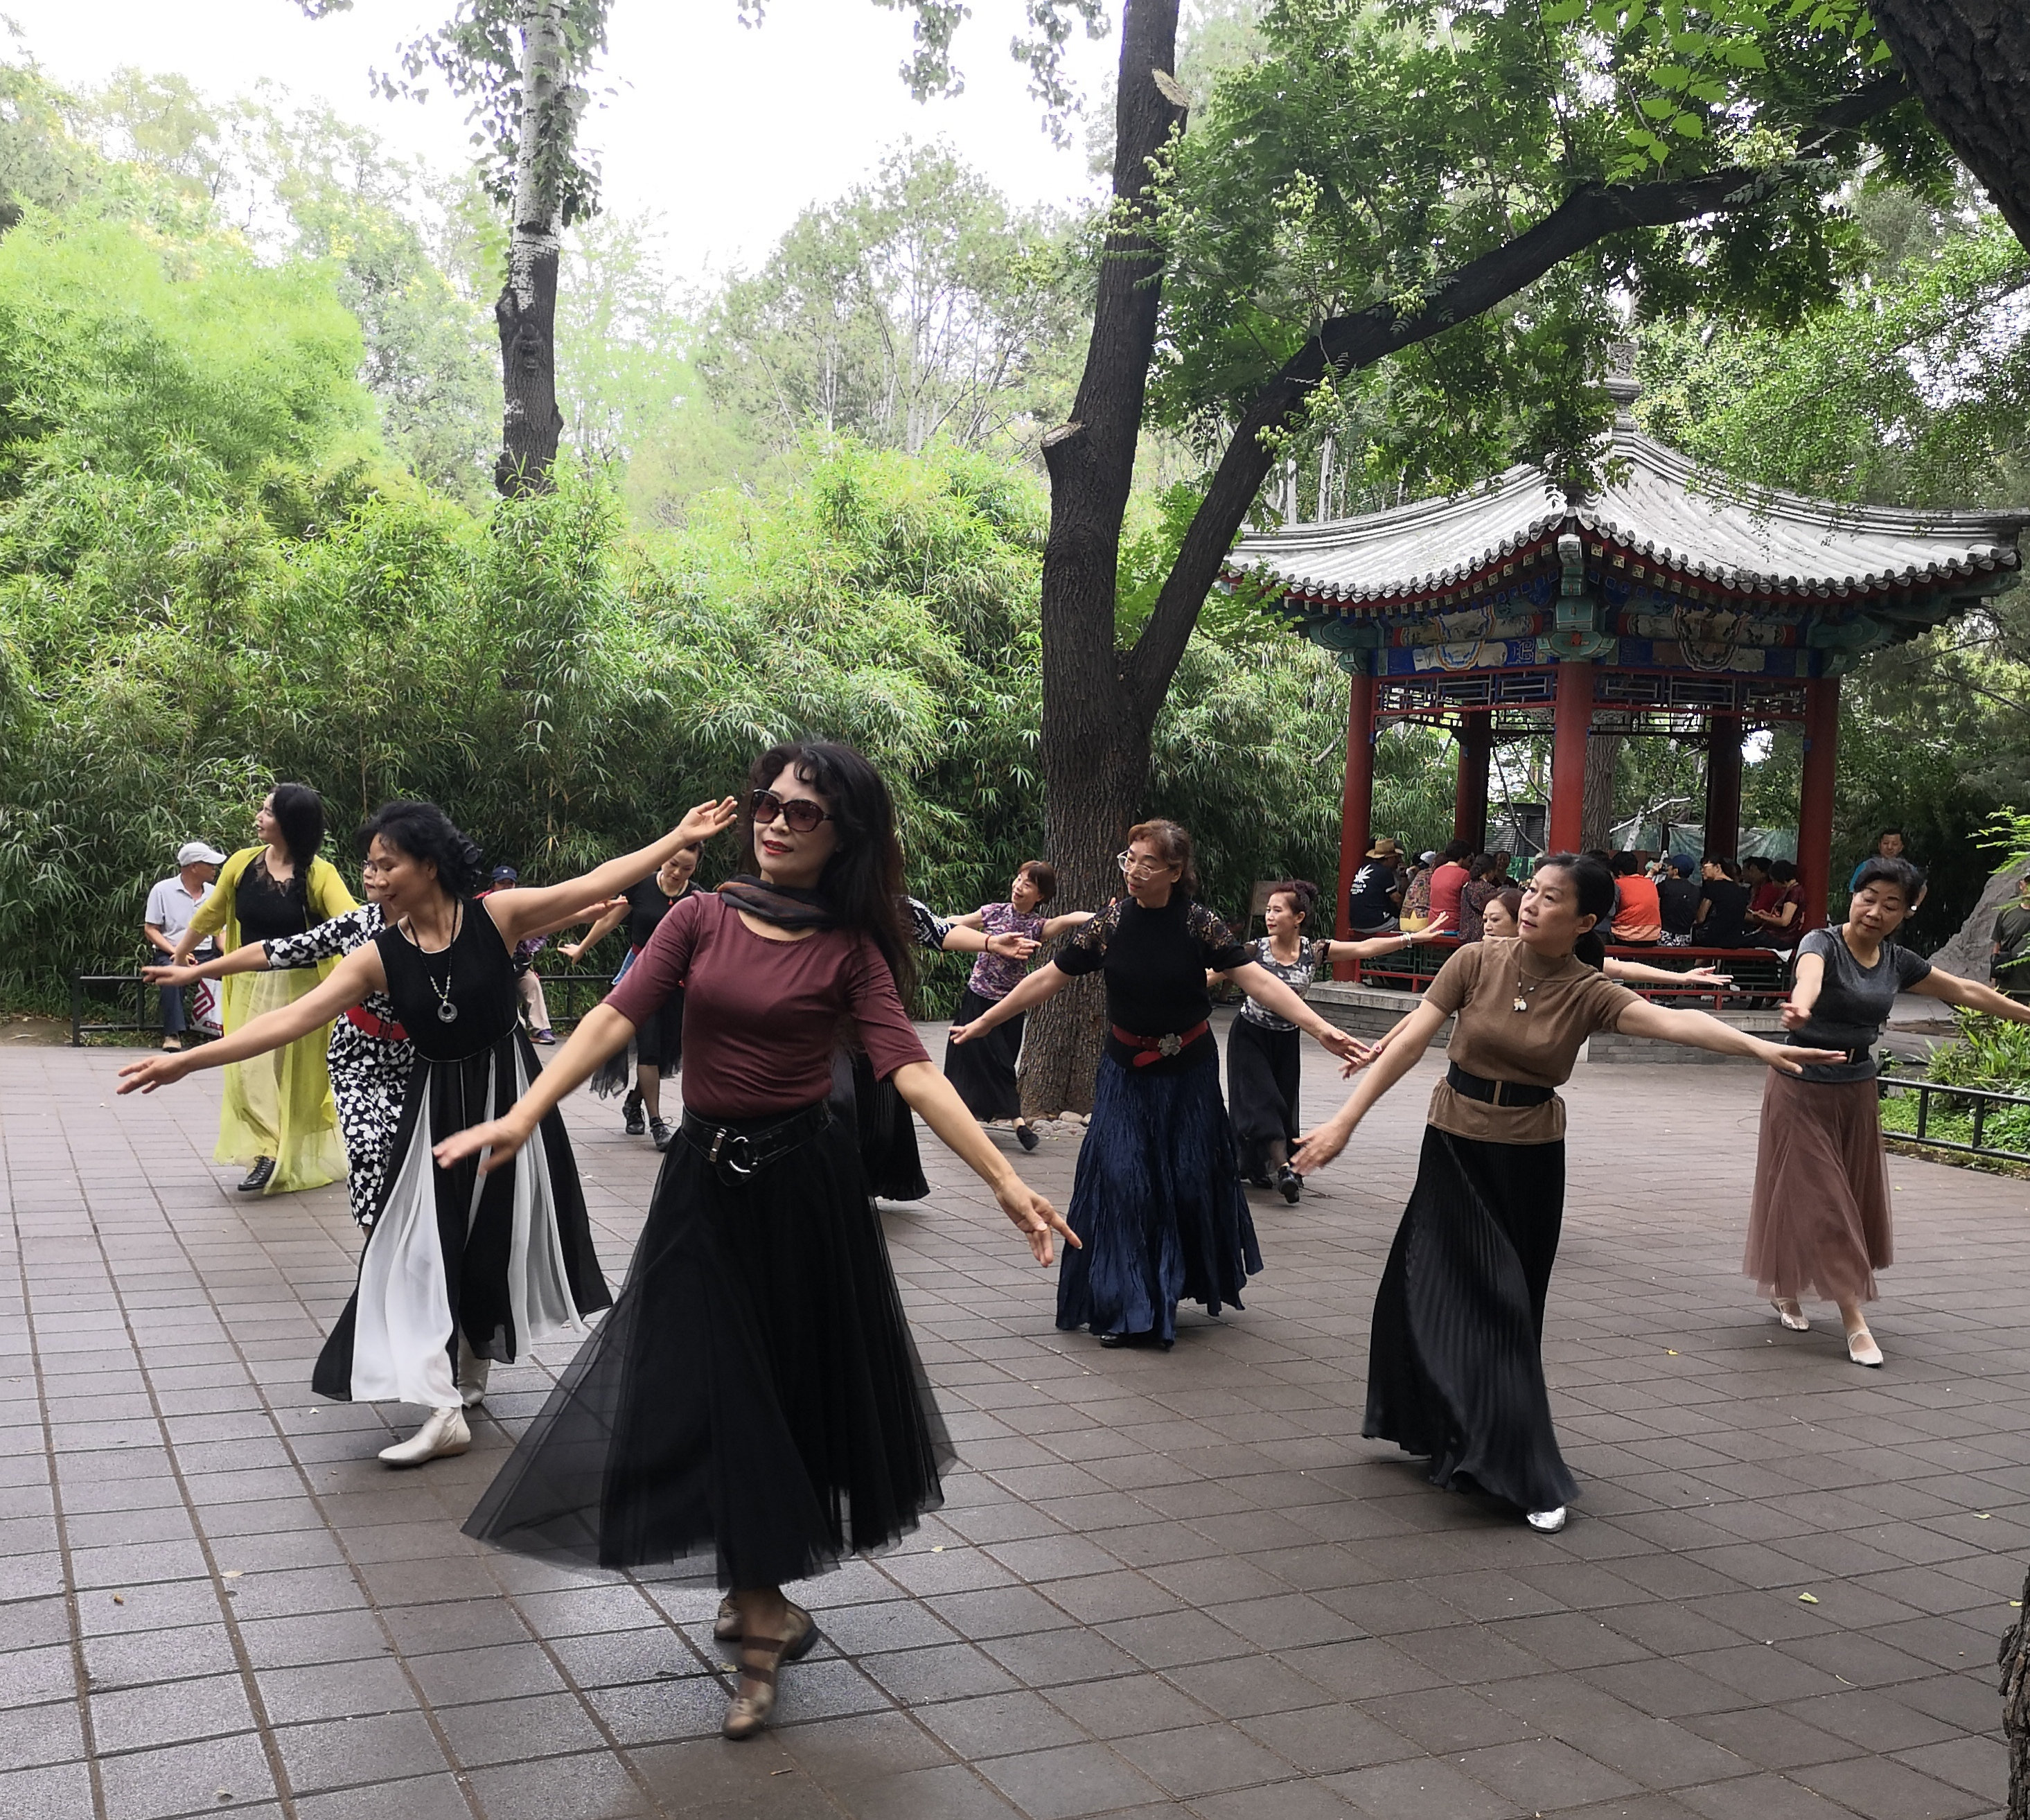 Across China: Never too old: a dancing granny's youthful dream - Xinhua | English.news.cn